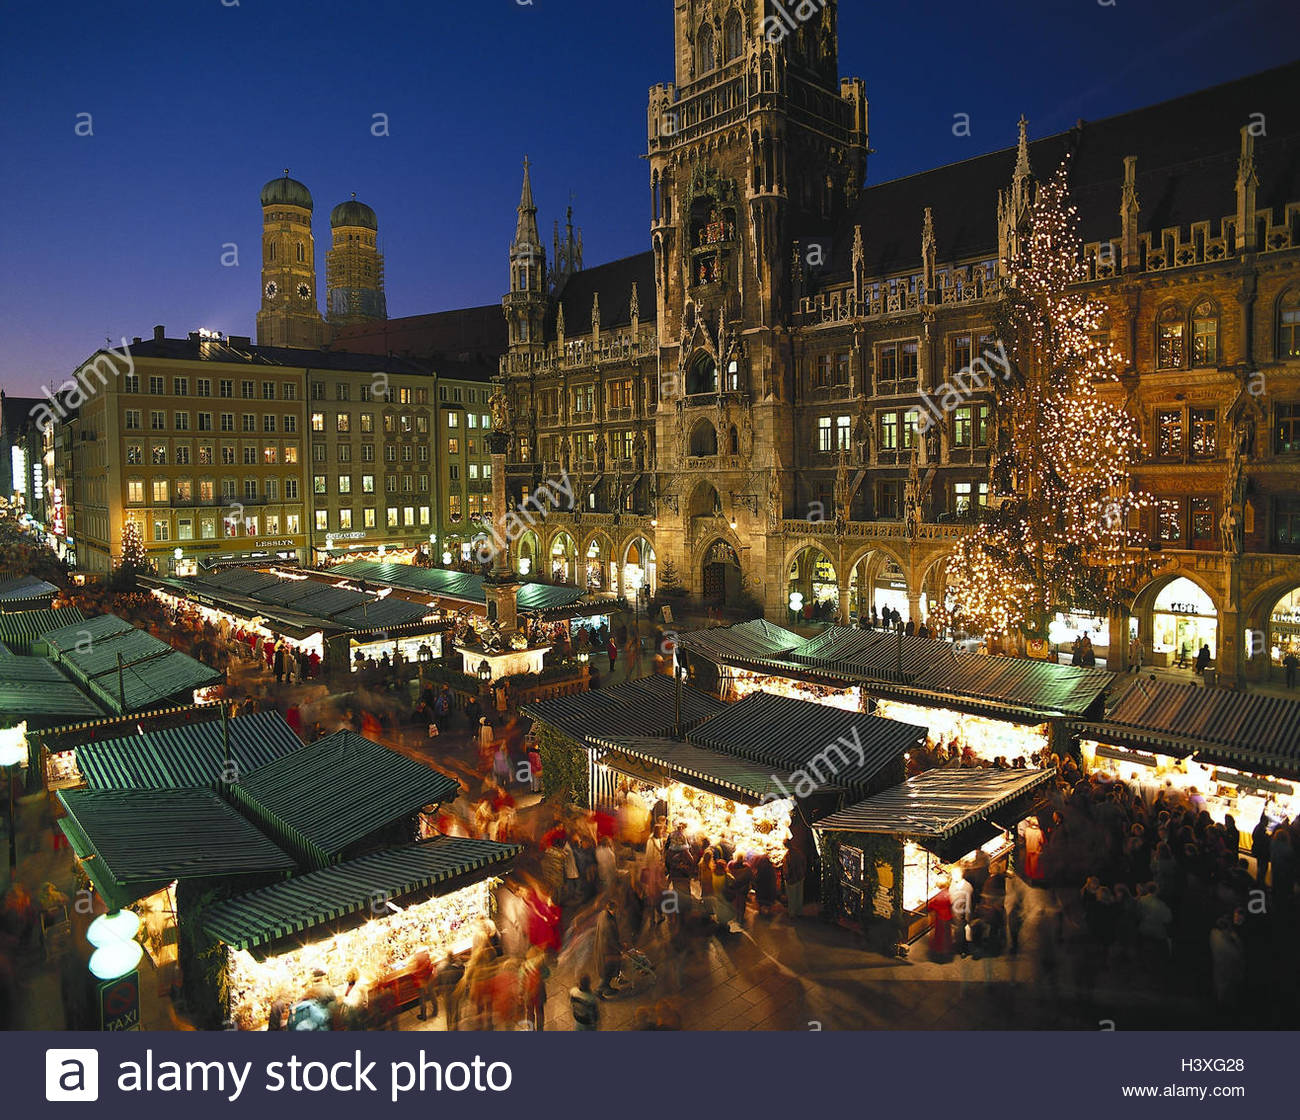 deutschland bayern m nchen marienplatz christmas fair. Black Bedroom Furniture Sets. Home Design Ideas